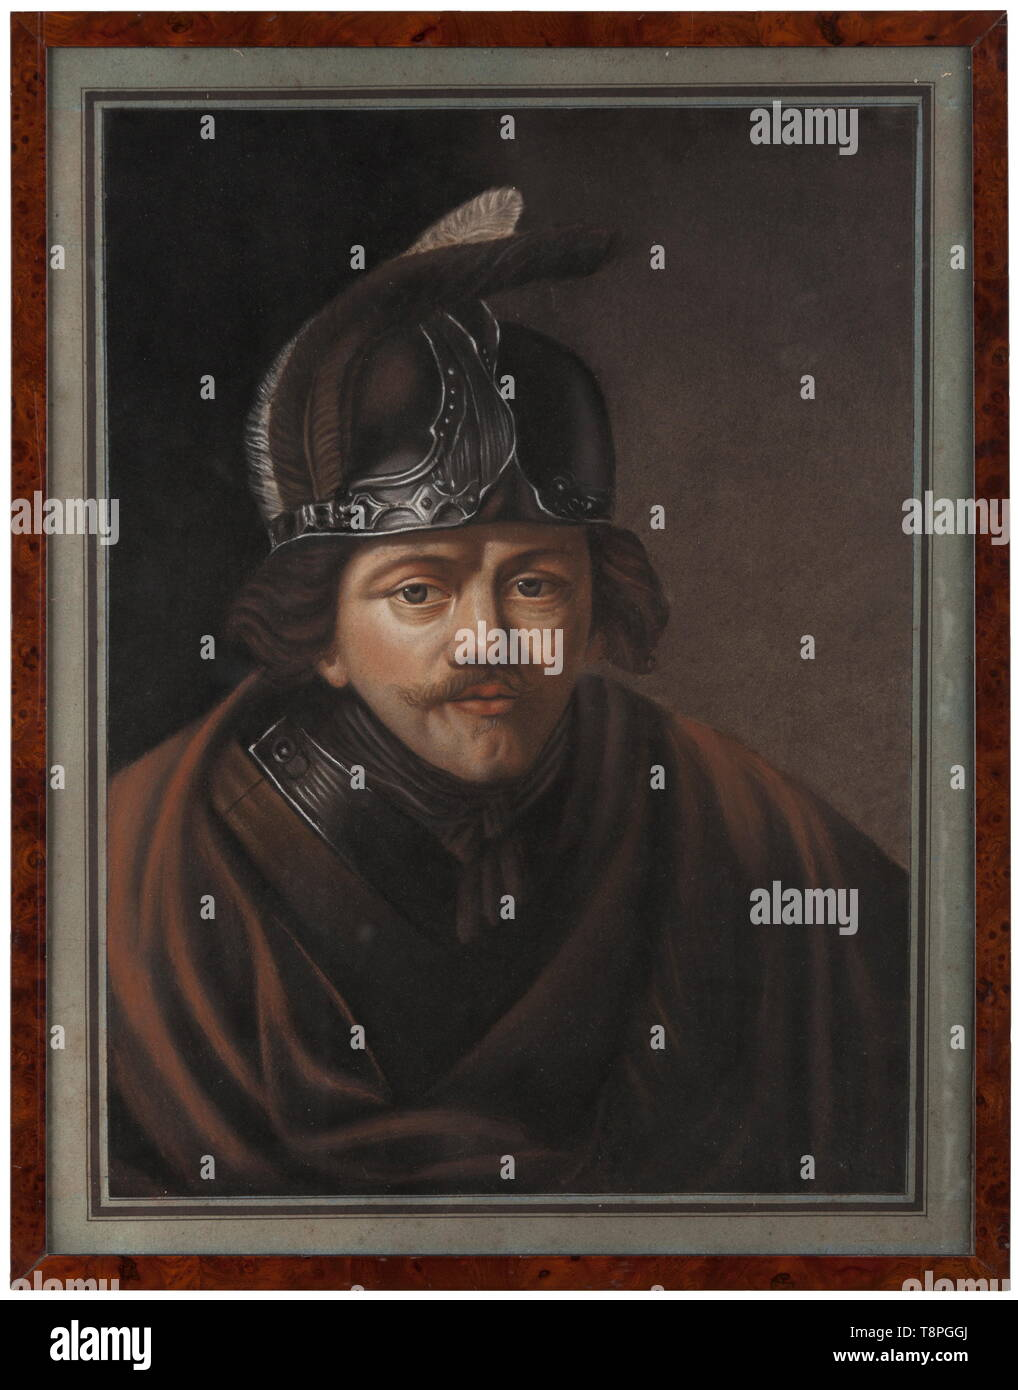 A pastel colour portrait of an East European aristocrat, 19th century Pastel colour on paper. Half-length figure with gorget and helmet in the style of the 17th century. Behind glass in a modern root wood frame. Dimensions of the painting 65 x 51 cm, dimensions of the frame 68.5 x 53.5 cm. historic, historical, fine arts, art, 19th century, Additional-Rights-Clearance-Info-Not-Available - Stock Image